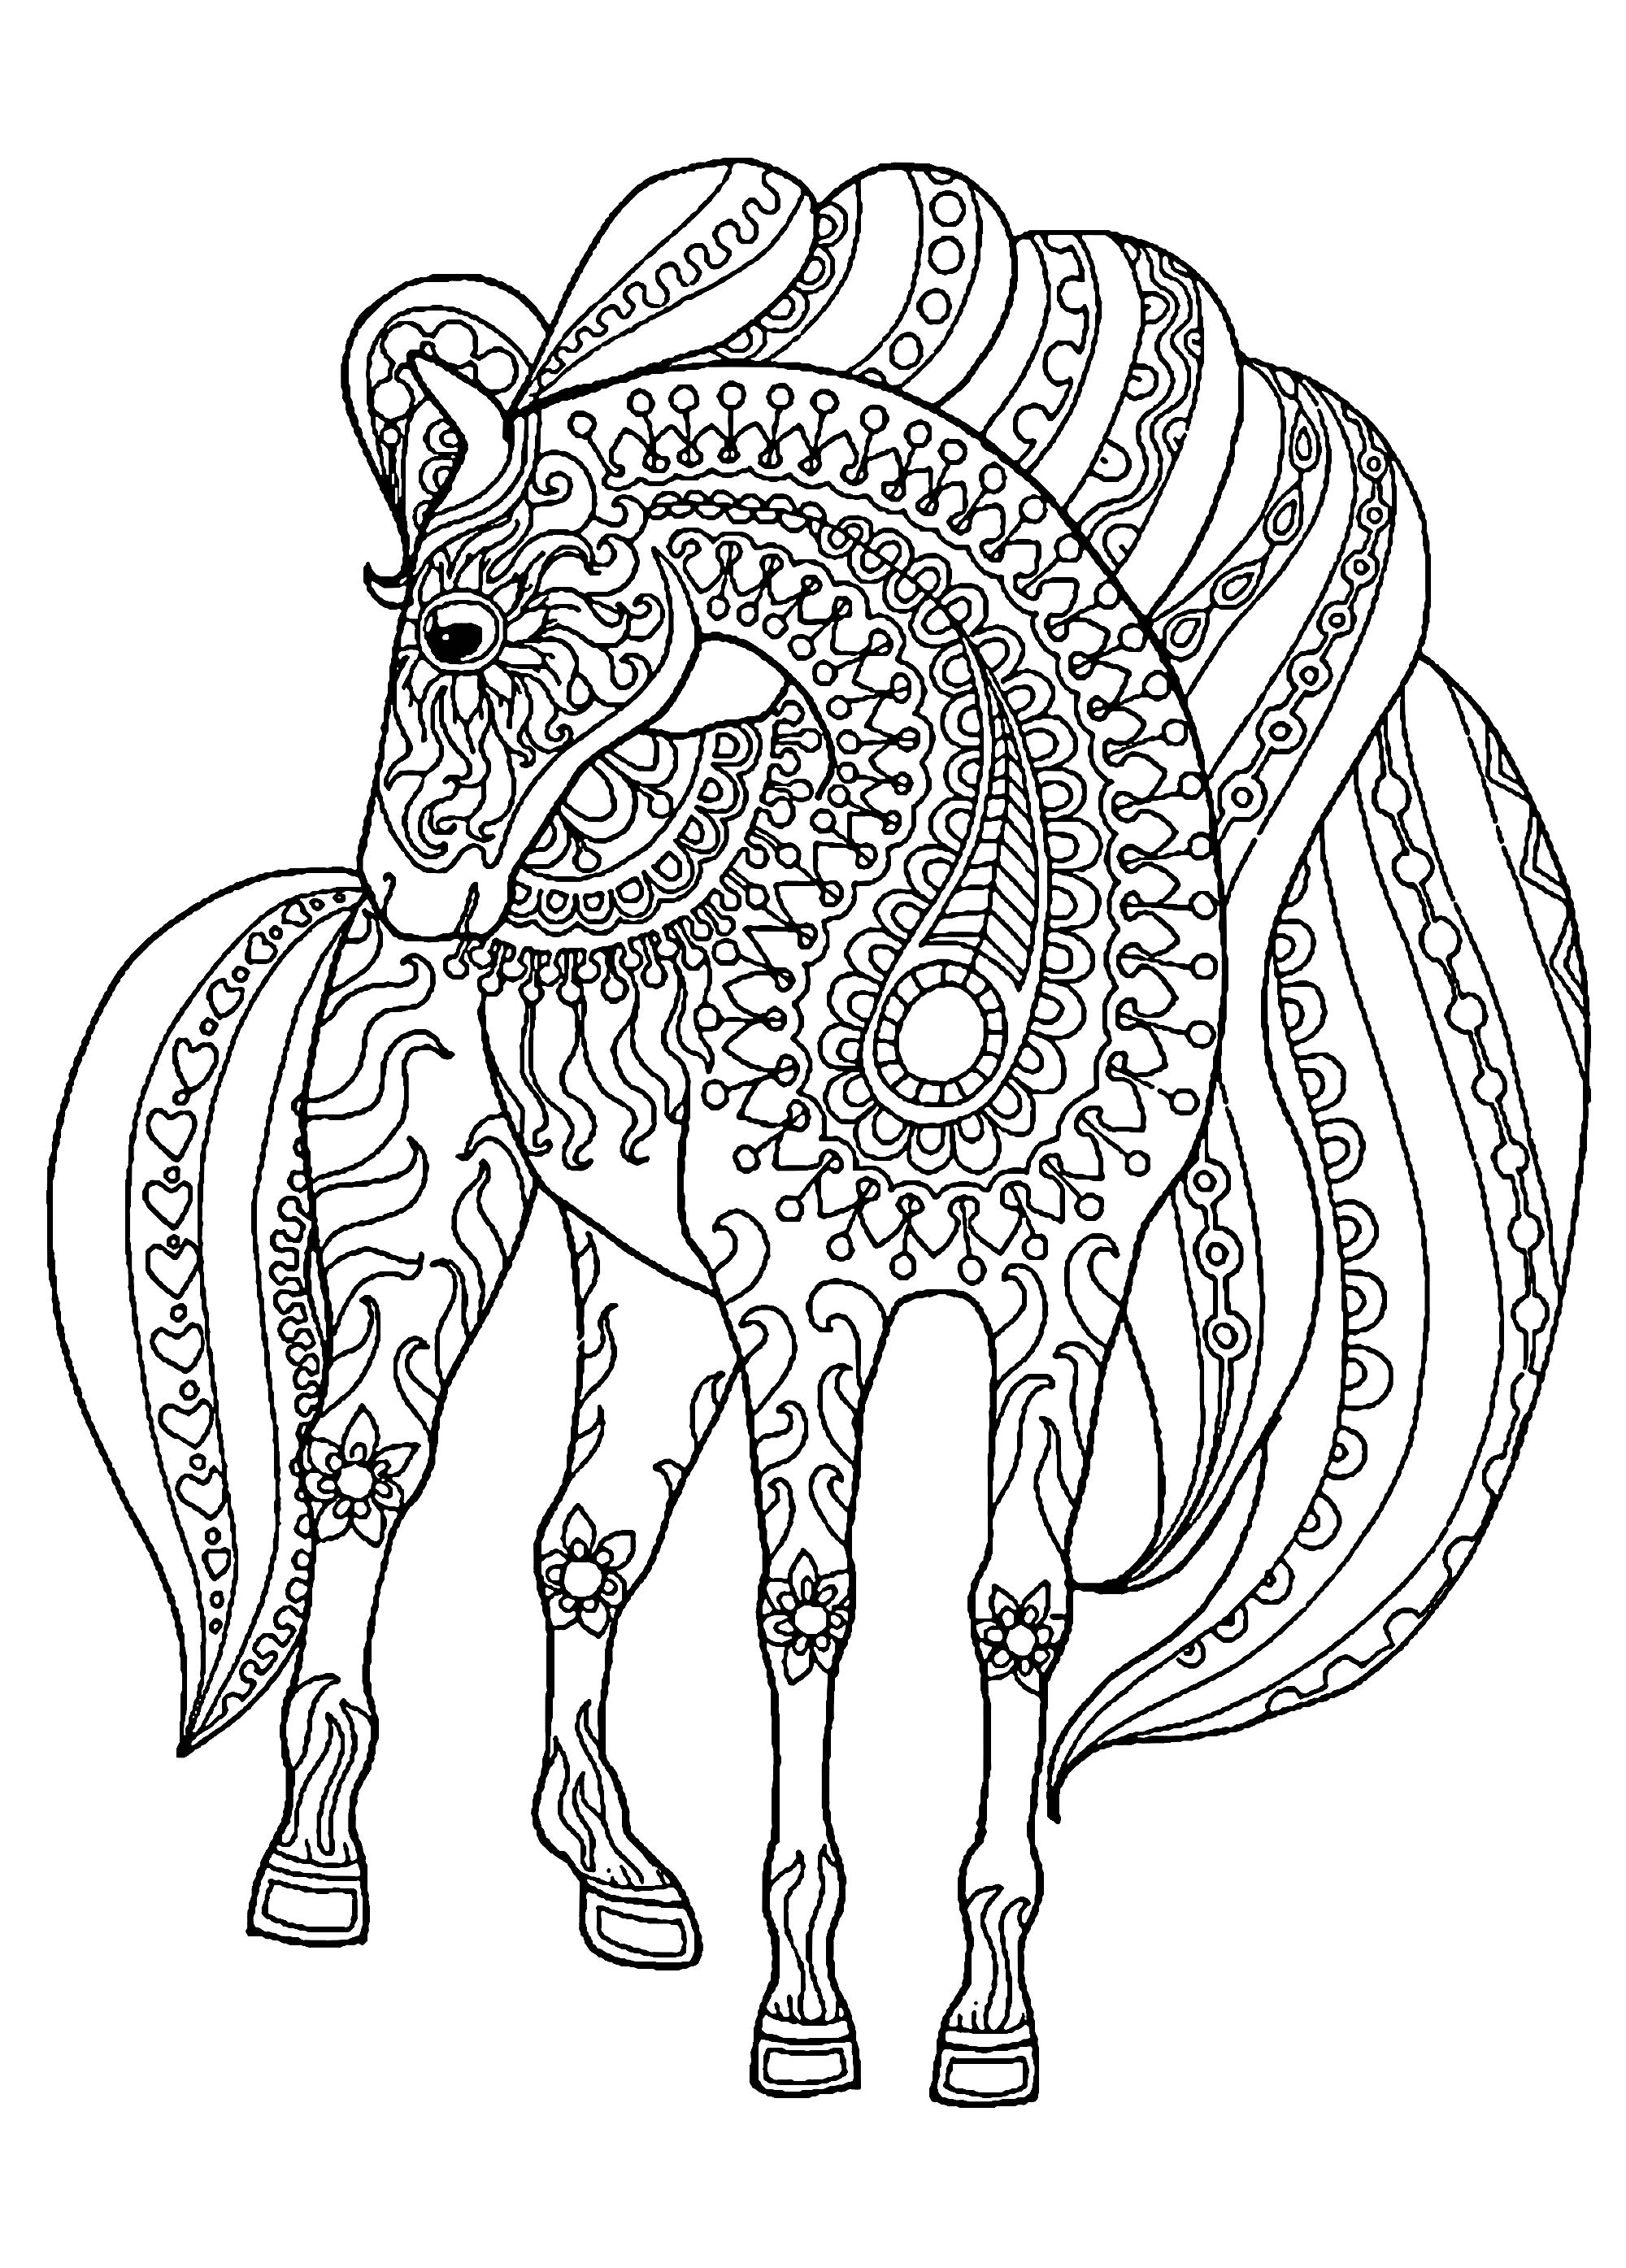 coloring pictures to color for kids doll coloring pages best coloring pages for kids kids pictures color for to coloring